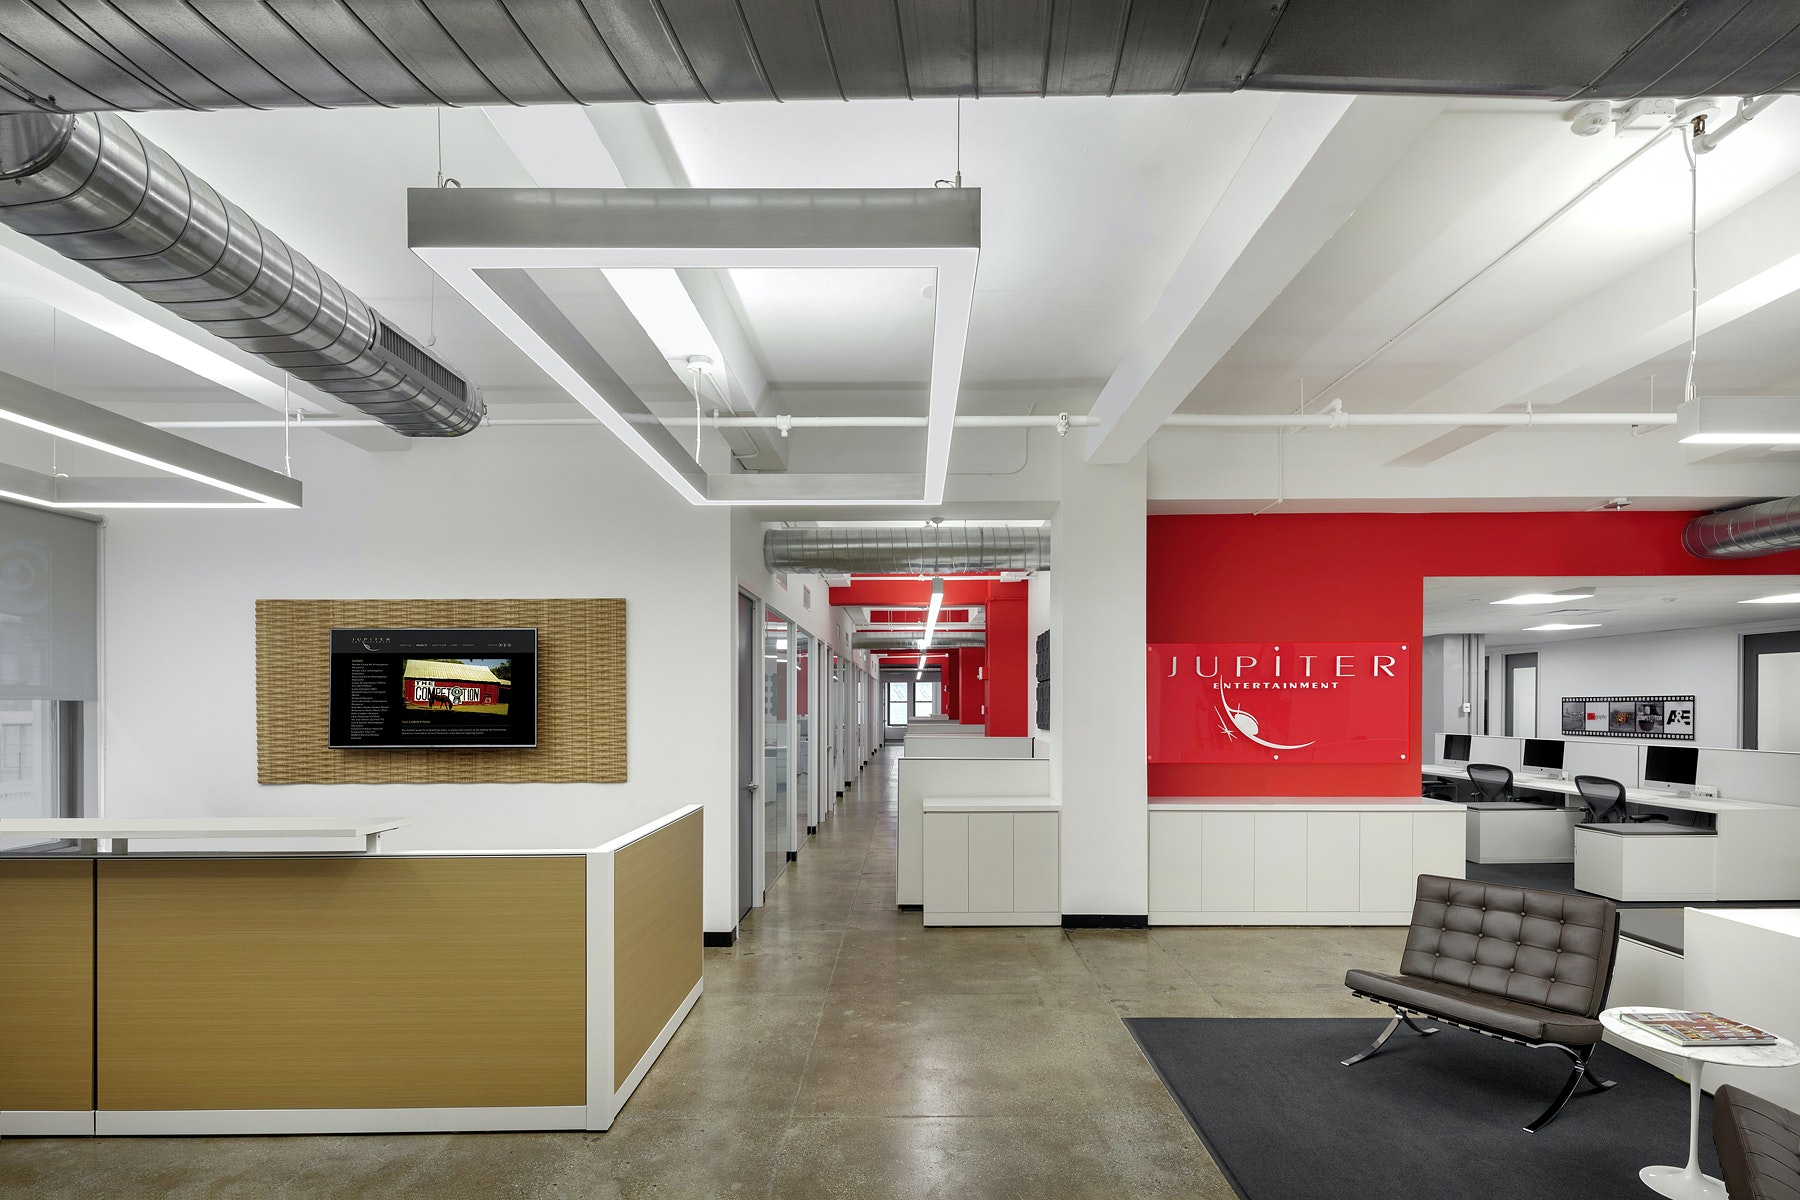 MADGI Provided A Full Floor Office Design And Build Out For Jupiter  Entertainmentu0027s Newly Completed 20,000 SF NYC Office Space And Production  Studios ...